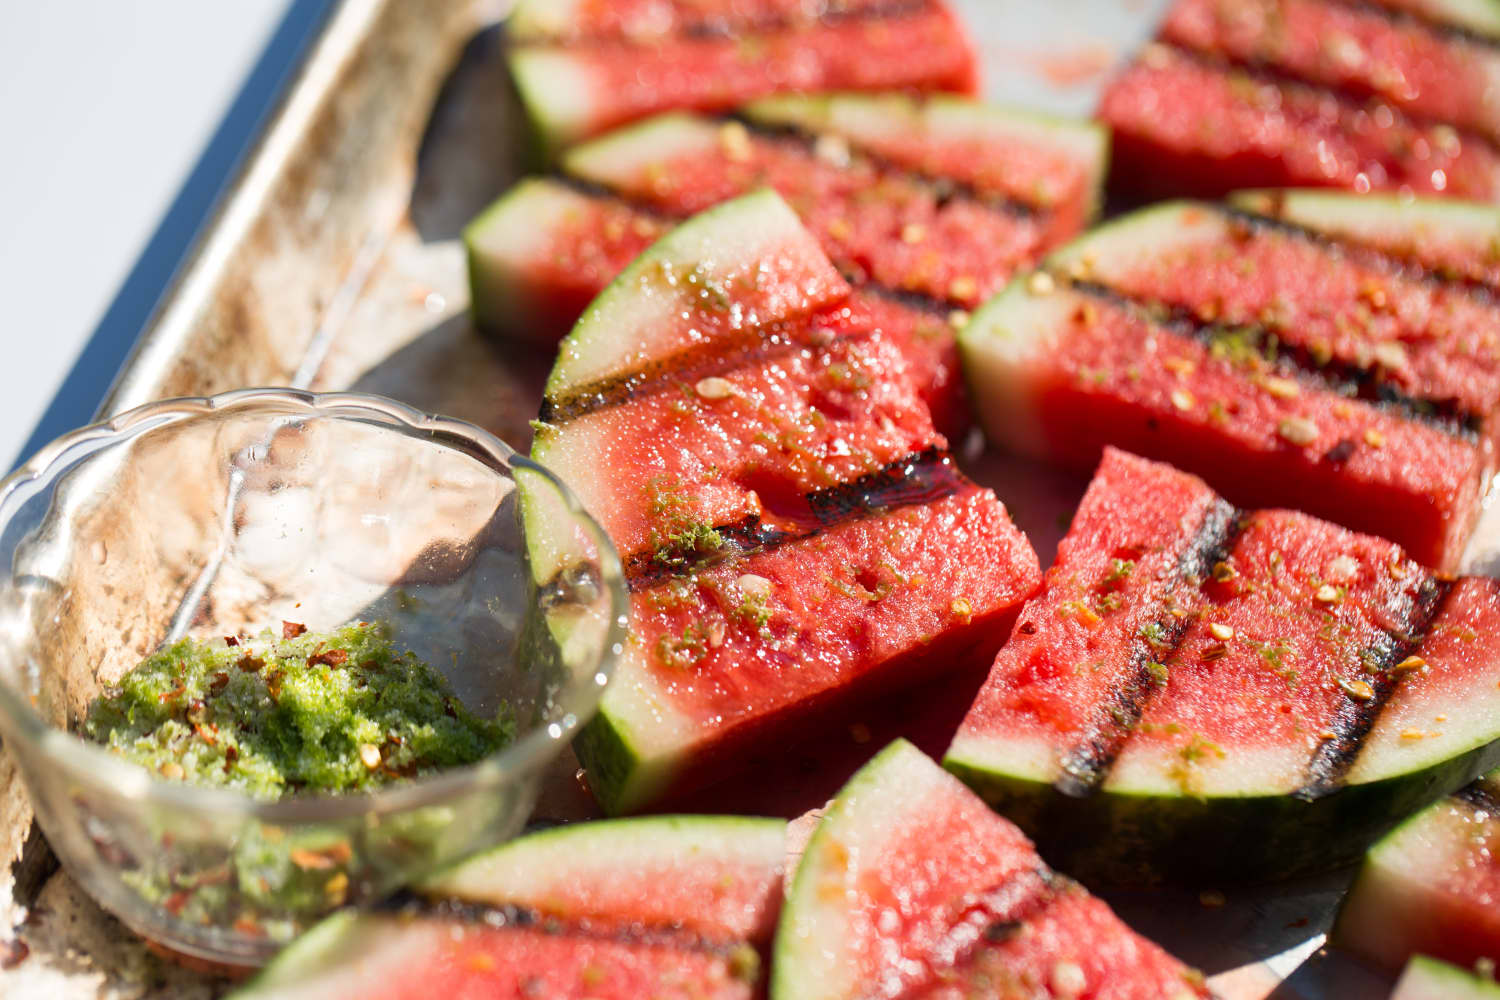 Grilled Watermelon Is Smoky-Sweet Perfection